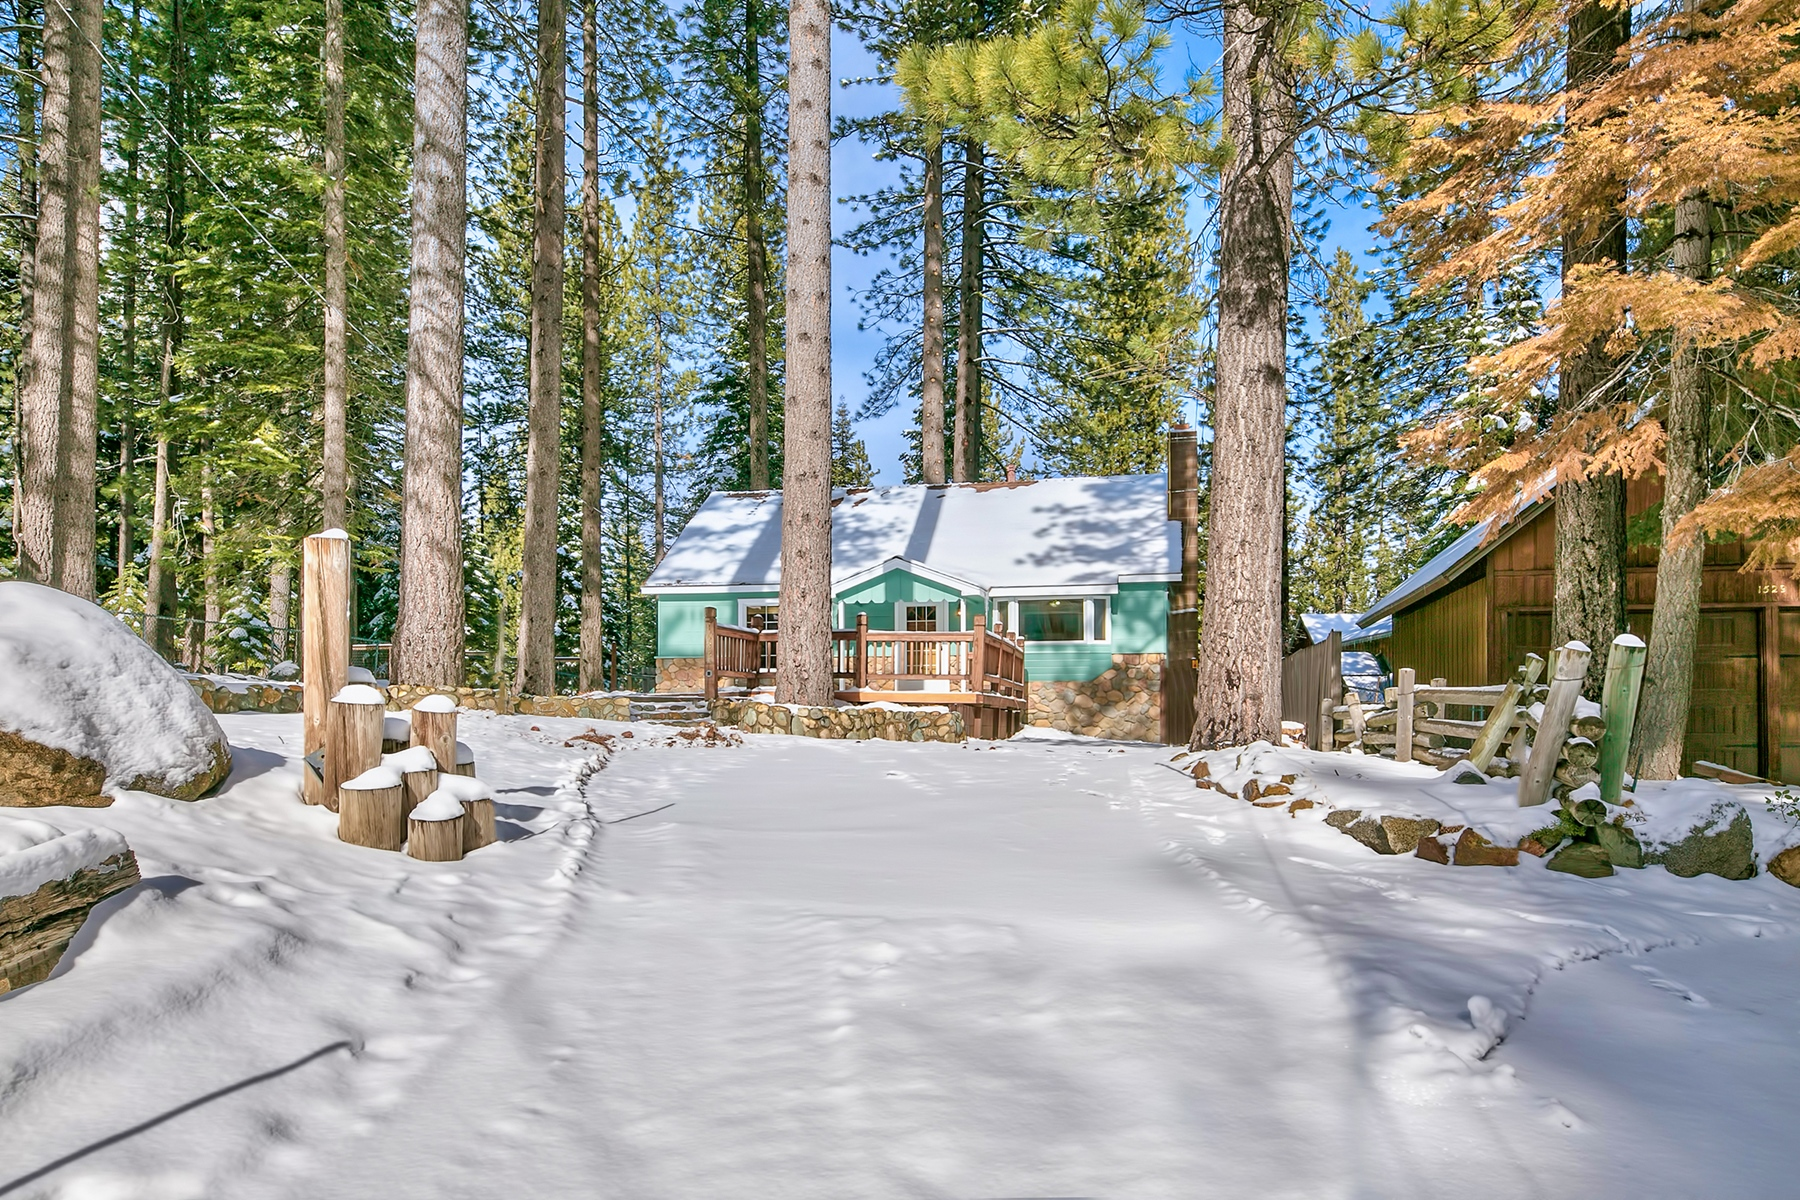 واحد منزل الأسرة للـ Sale في 1523 Plumas Circle, South Lake Tahoe, CA South Lake Tahoe, California, 96150 Lake Tahoe, United States